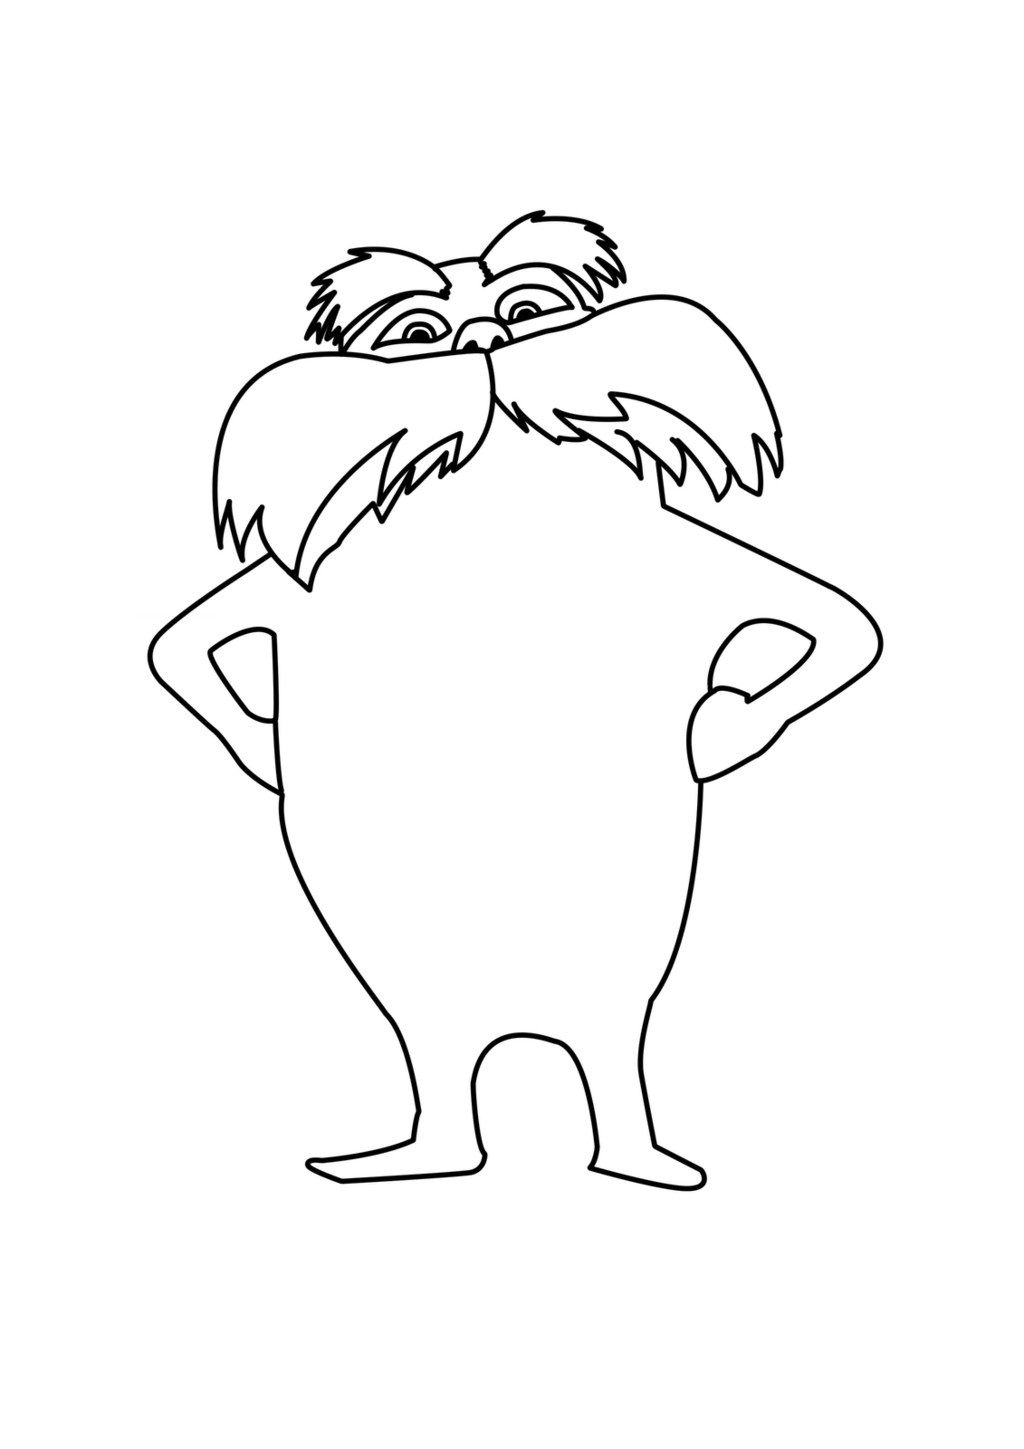 Adult Best The Lorax Coloring Page Gallery Images beauty printable lorax coloring pages me gallery images